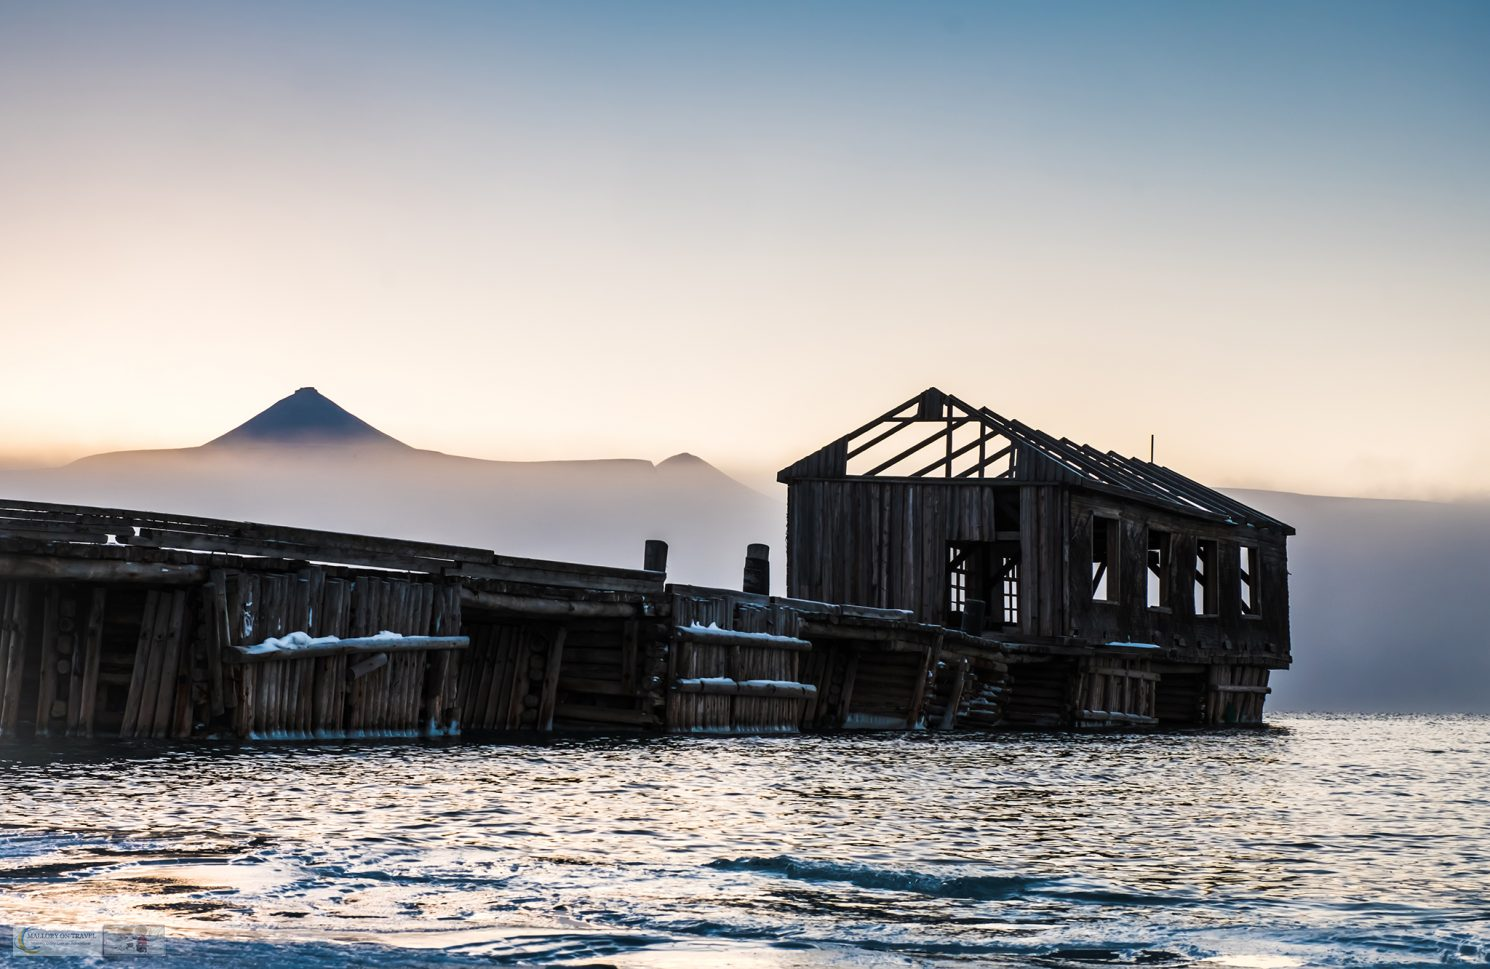 Earth Day; The ghost town of Russian mining community Colesburka in the Svalbard archipelago in the arctic Norway on Mallory on Travel adventure travel, photography, travel Iain Mallory_Svalbard-1-59